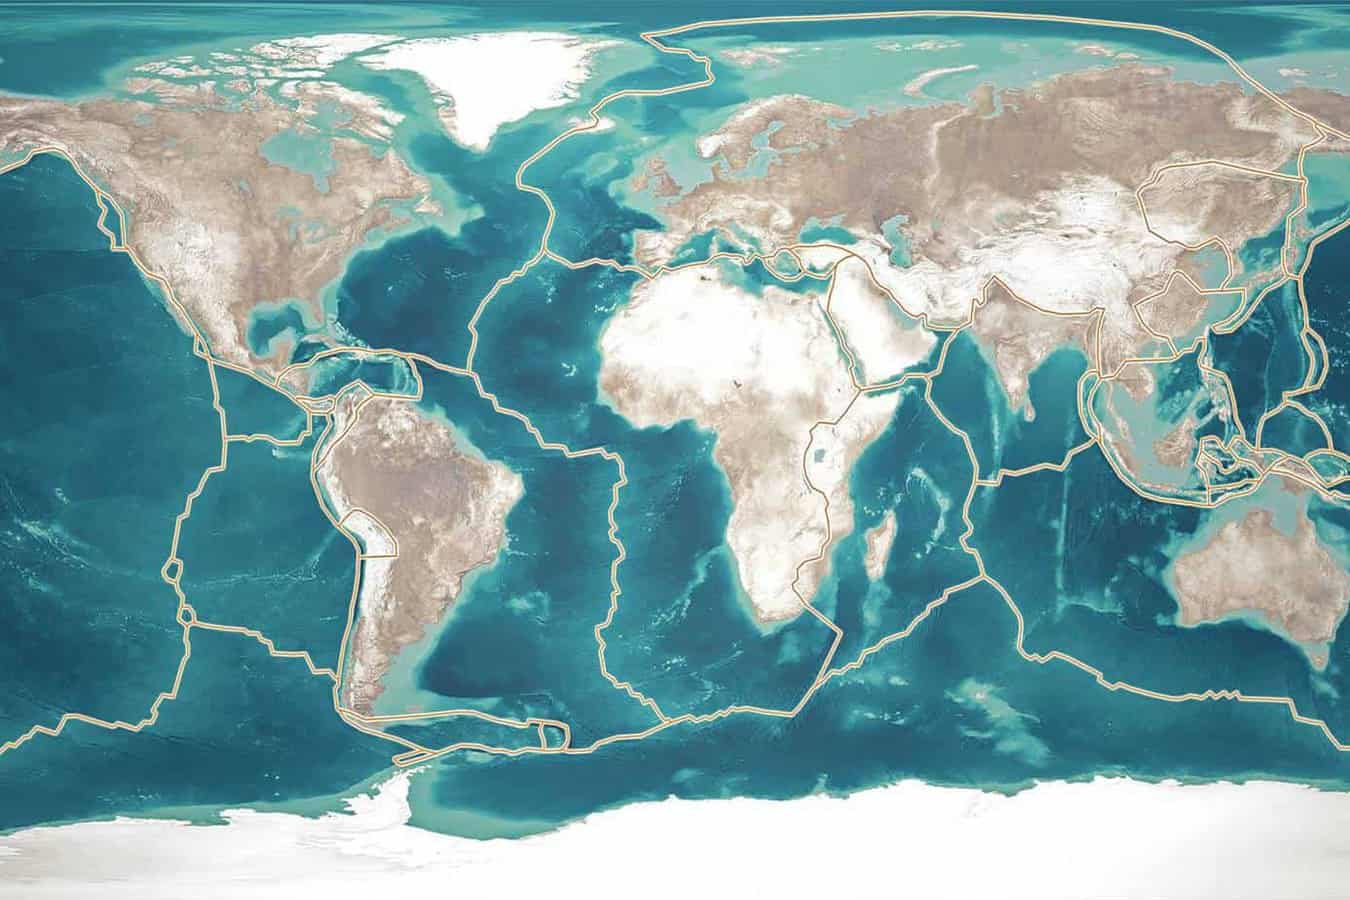 Researchers uncover 2.5 billion years of continents breaking up, getting back together